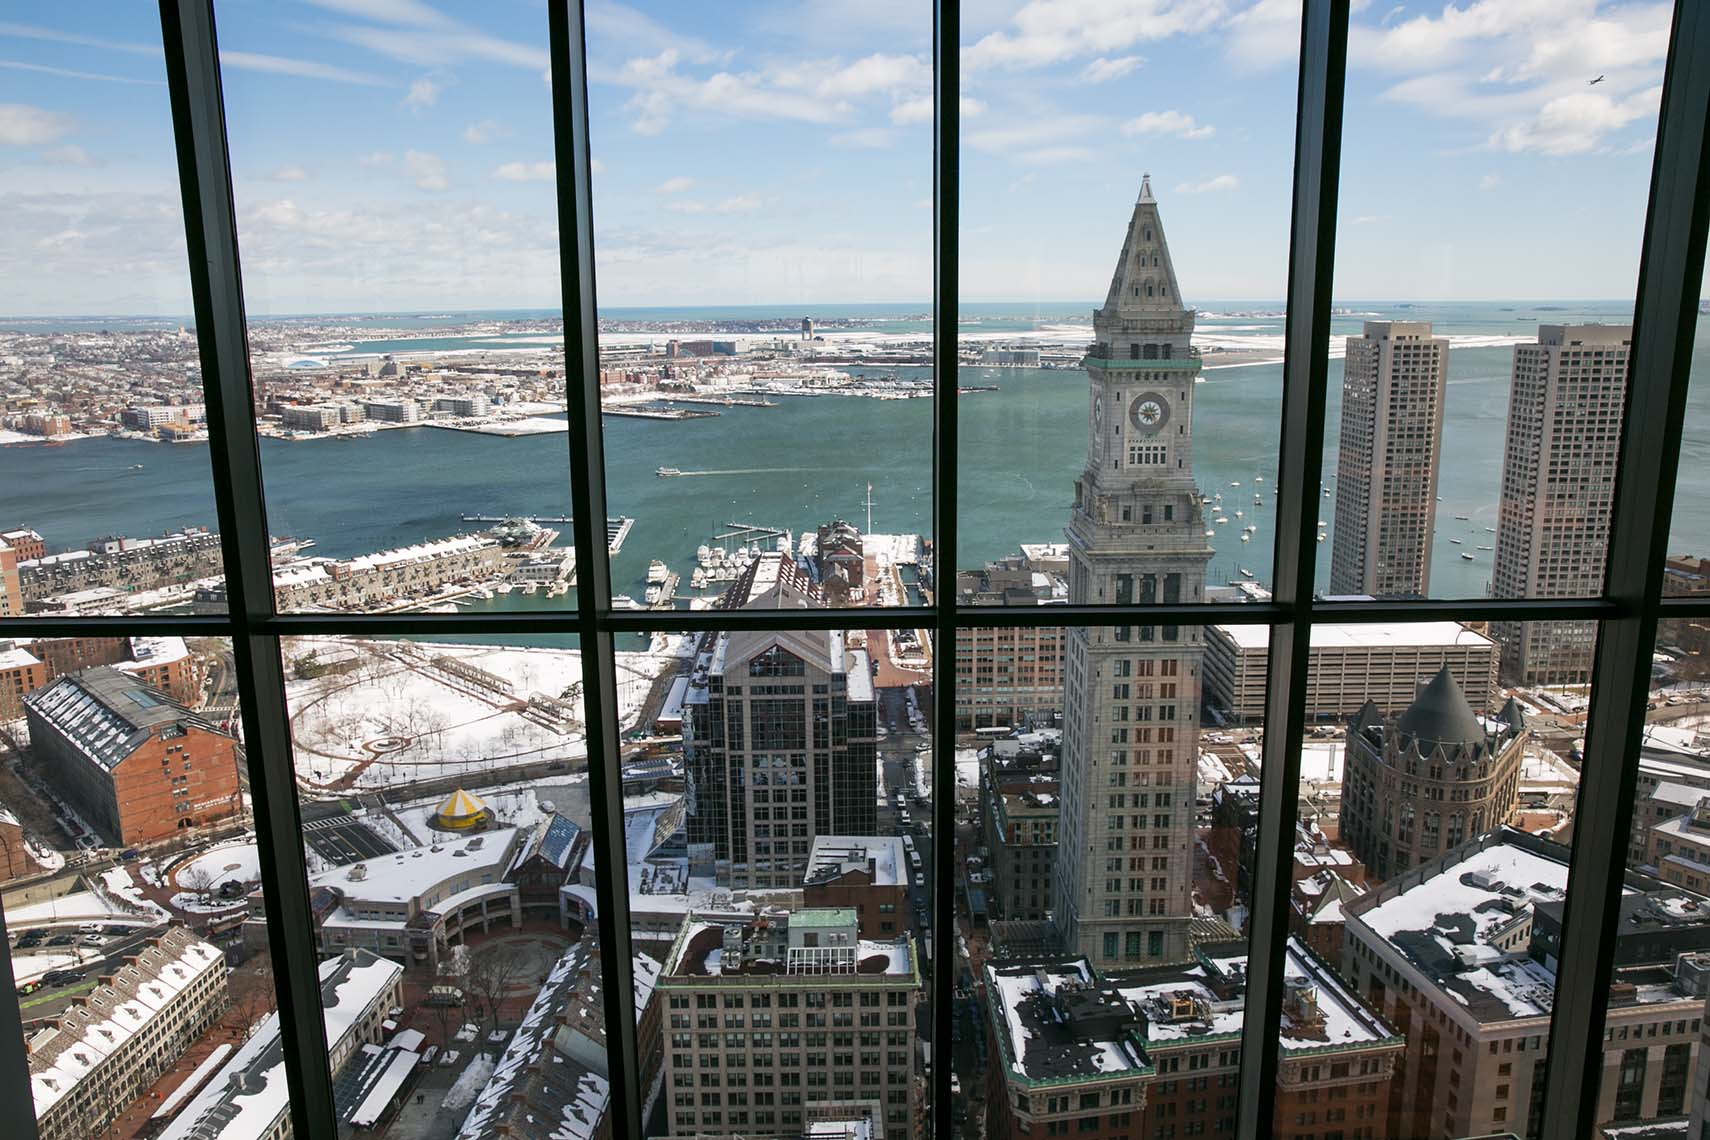 View of the Customs House and Boston Harbor from the State Room